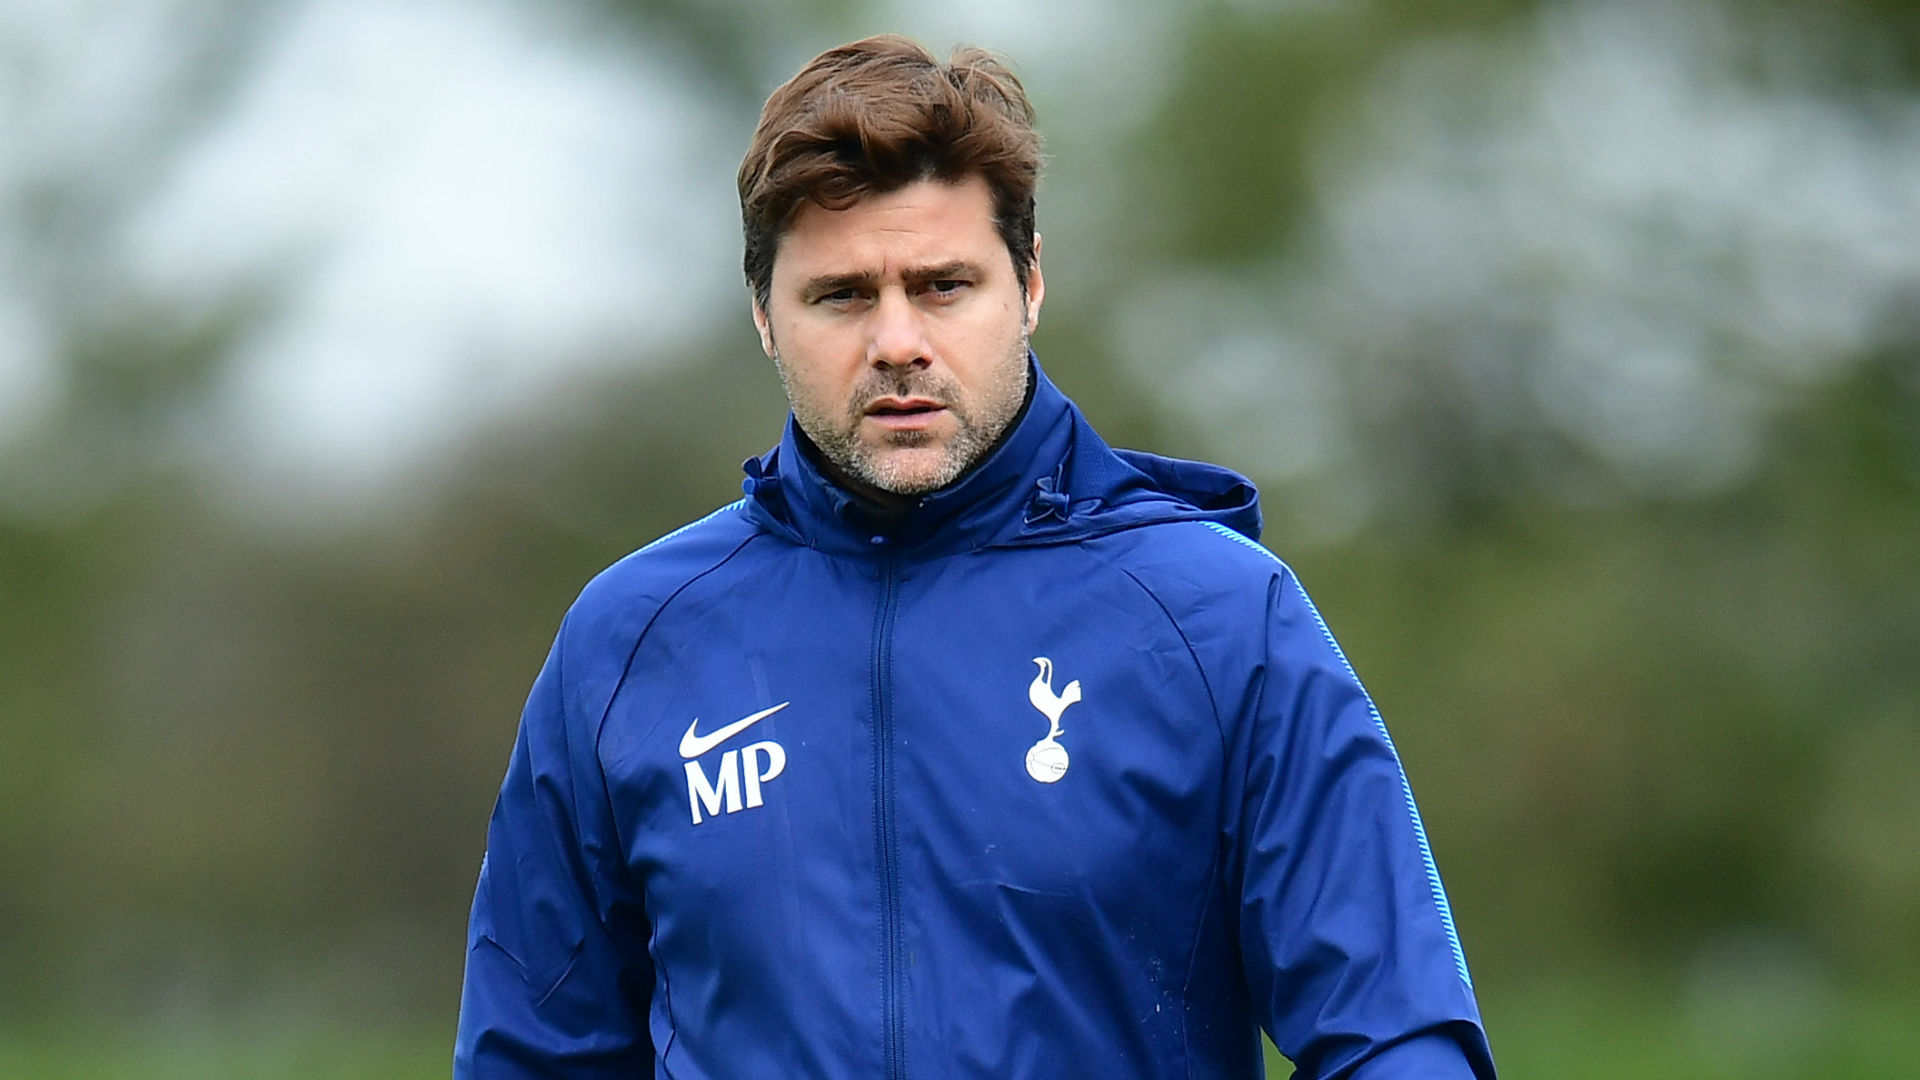 'We're going to kill Man City!' - Pochettino's Spurs ready to fight league leaders